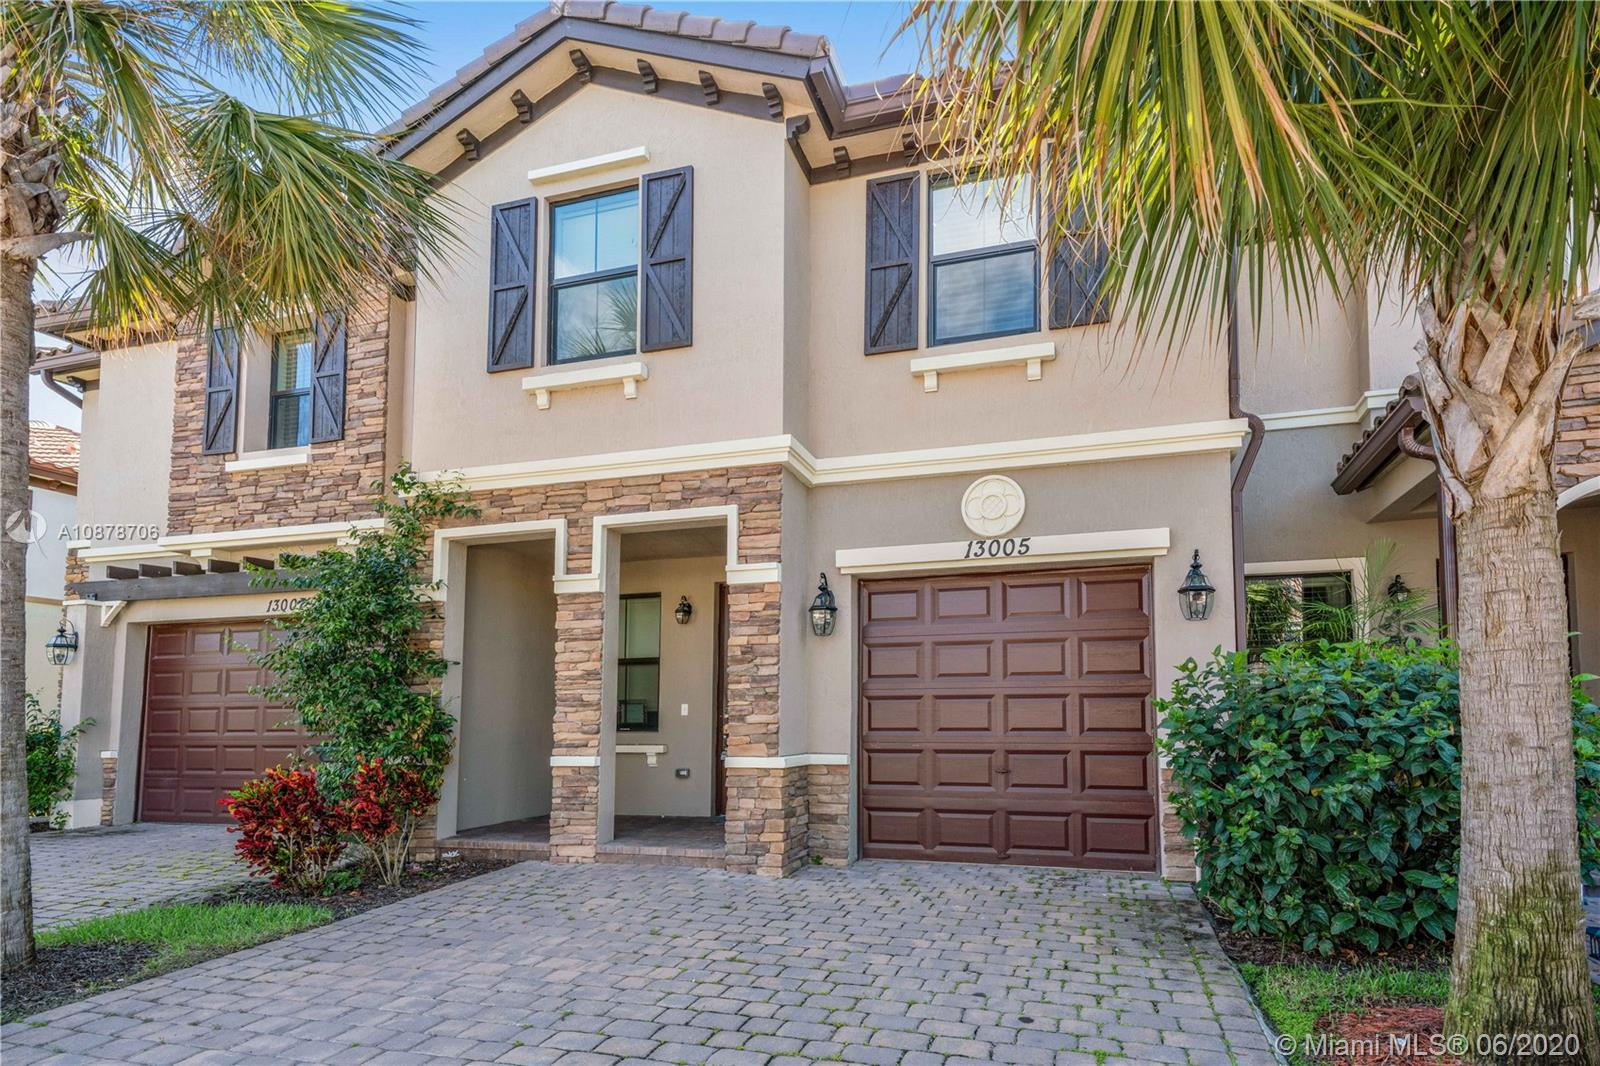 image #1 of property, Flavor Pict Townhomes Pud